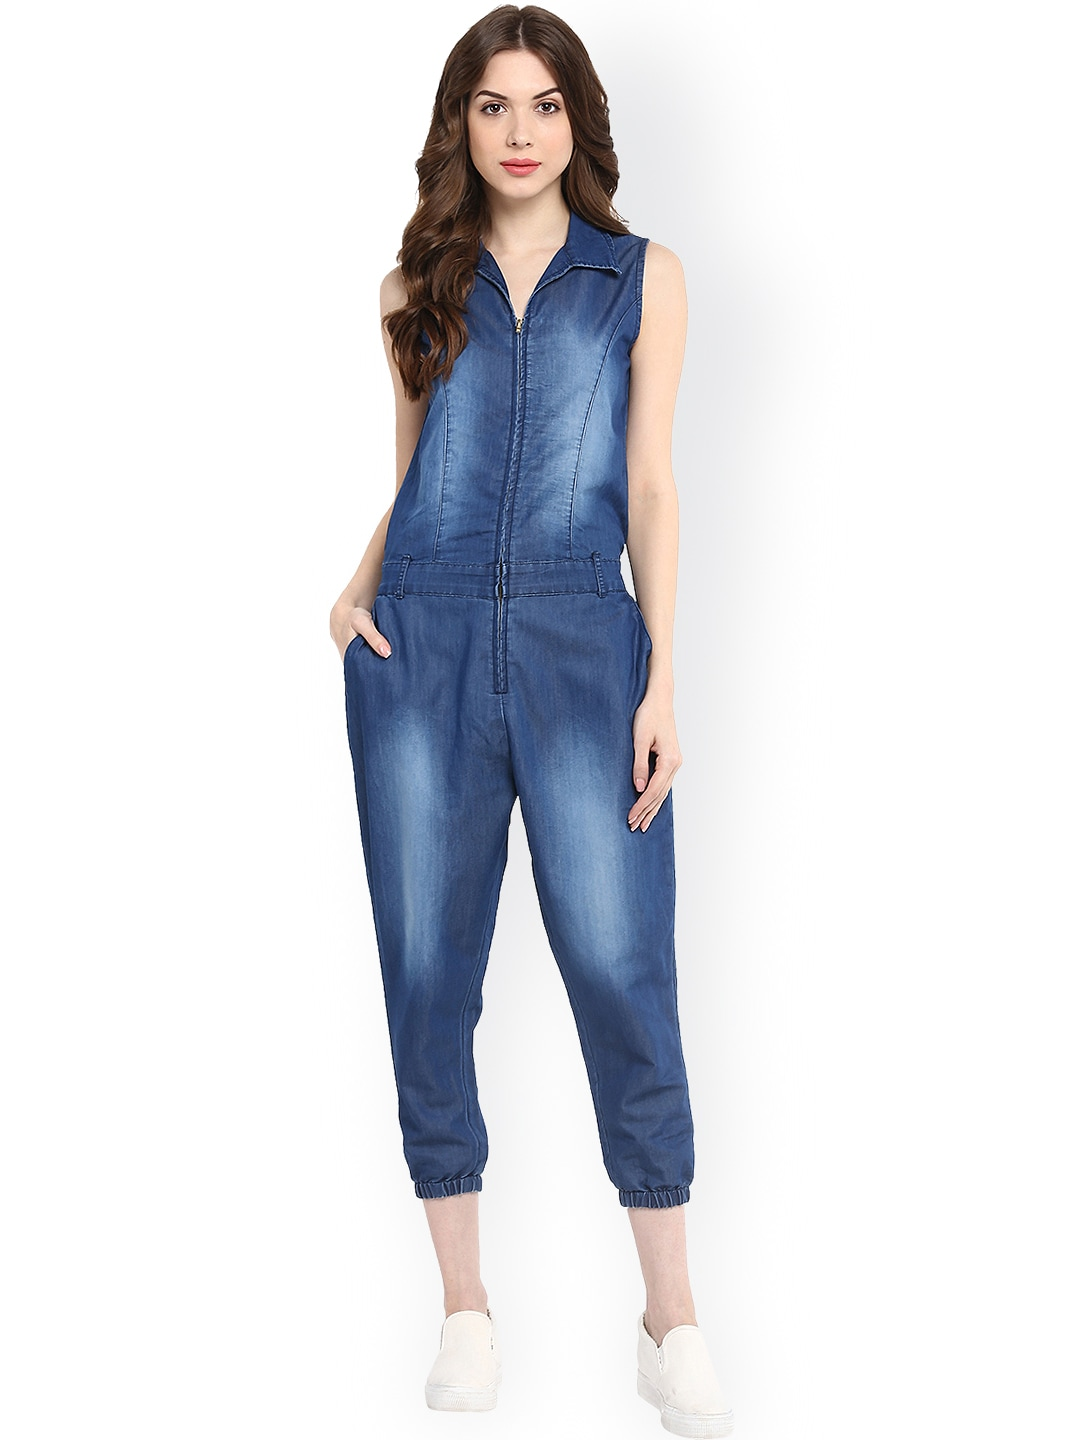 0a0e5b6417 Jumpsuit In Denim - Buy Jumpsuit In Denim online in India